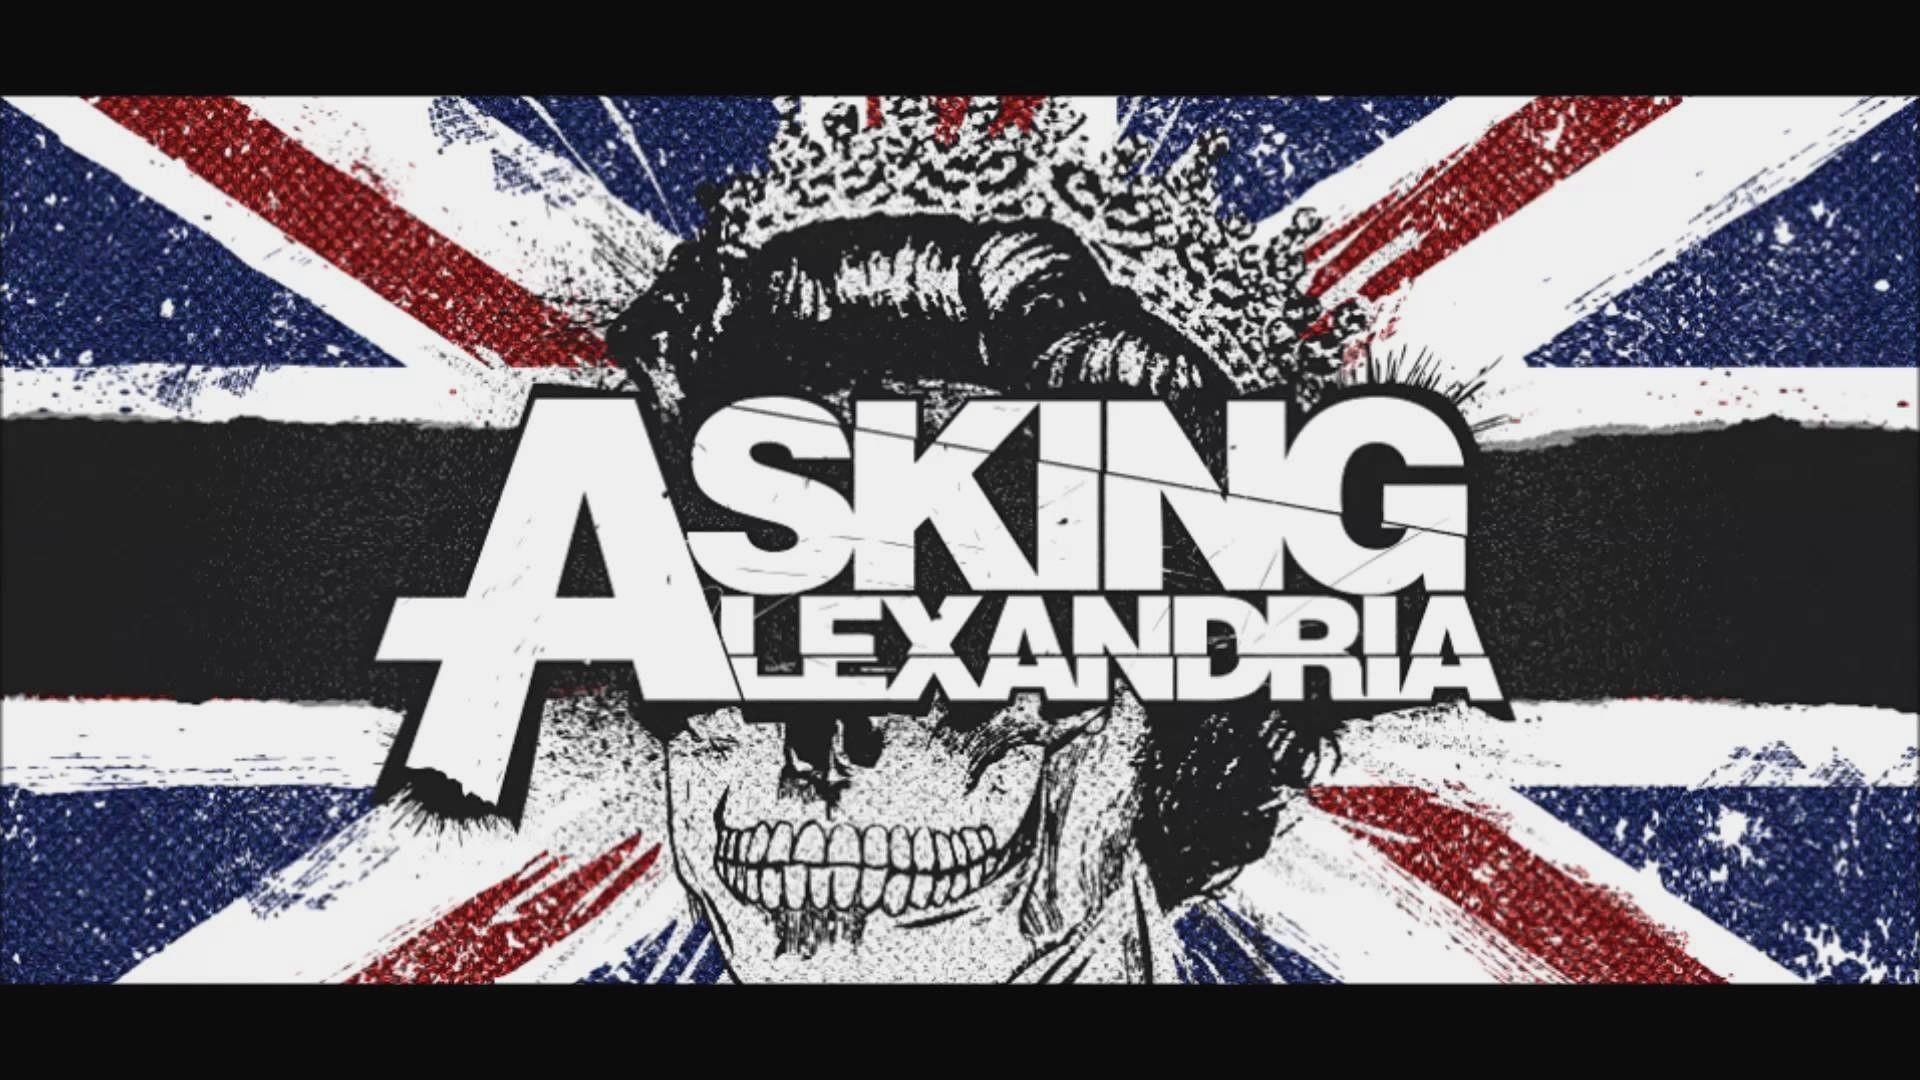 1920x1080 Asking Alexandria Wallpapers HD Download